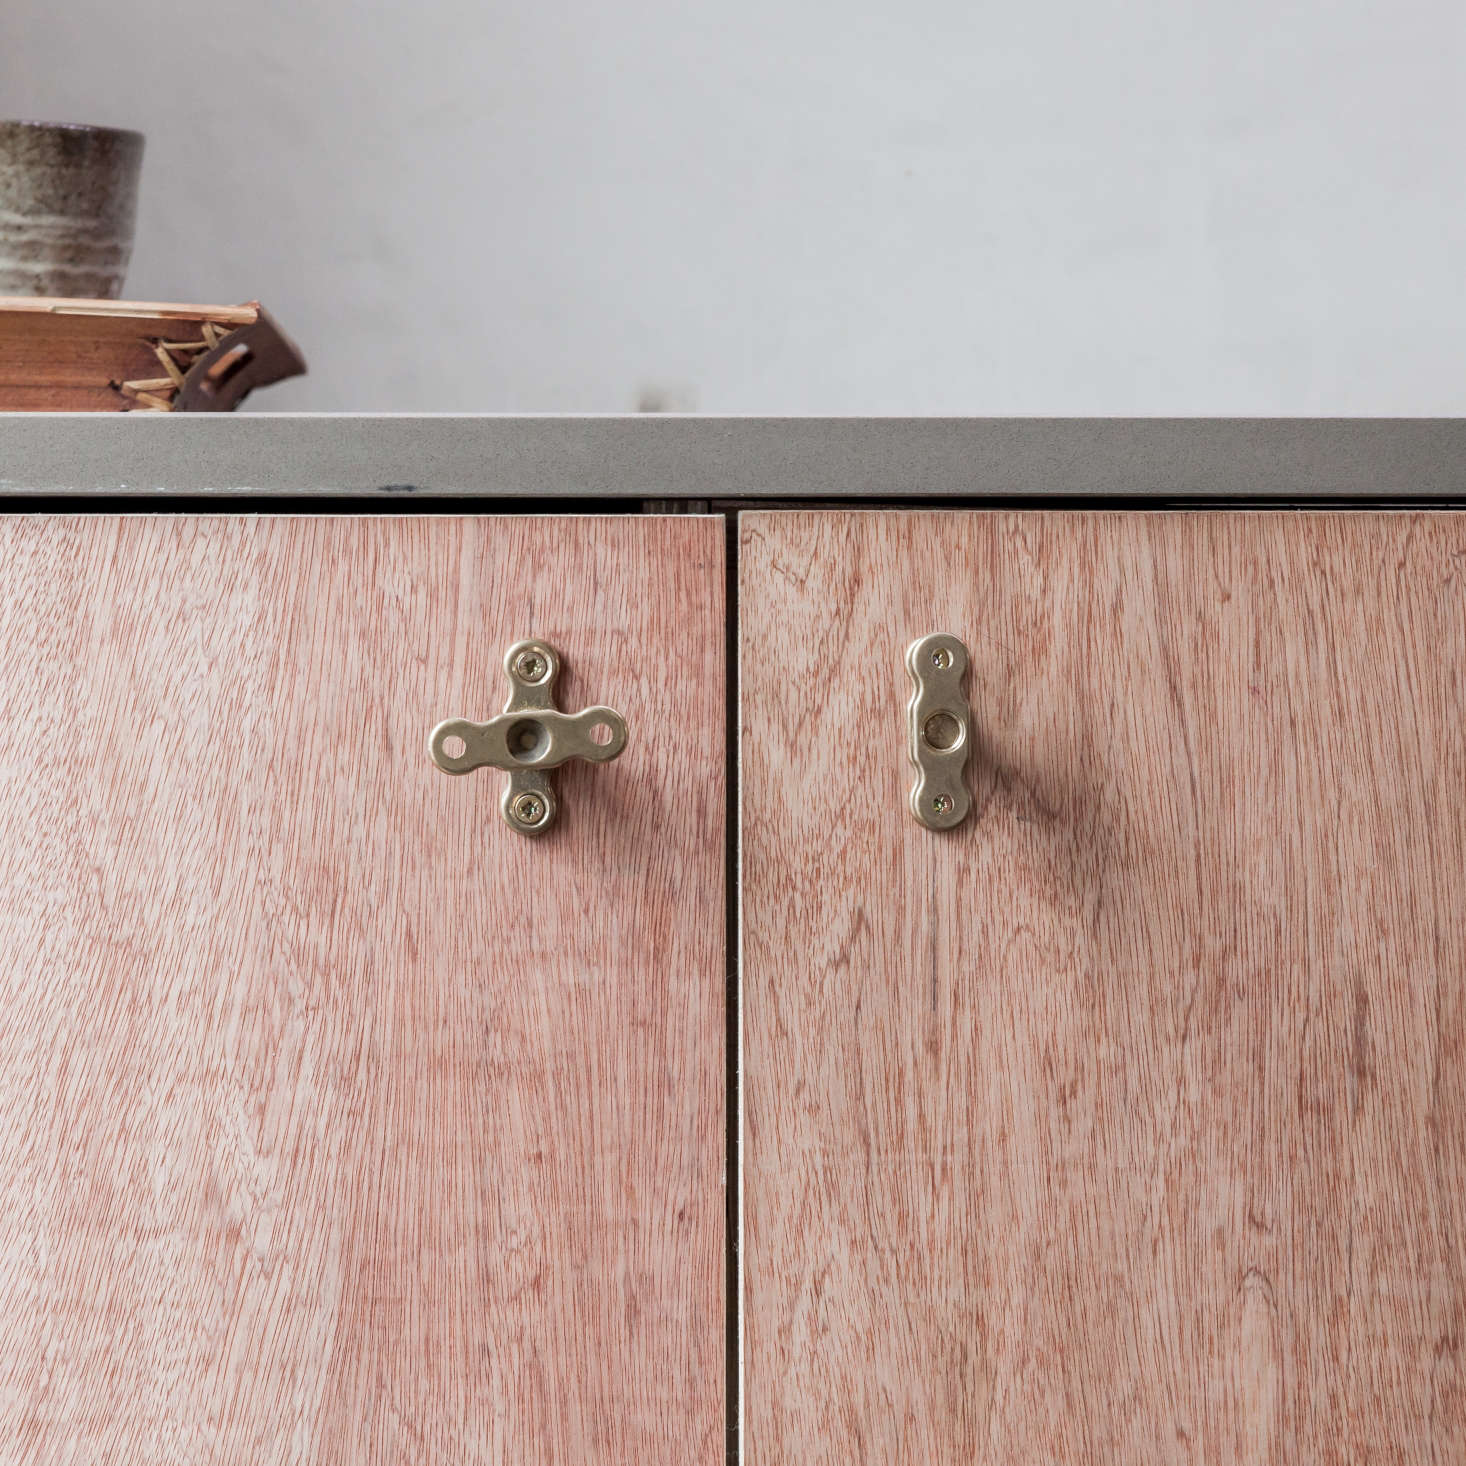 Plywood cabinets with cabinet knobs made from brass plumbing parts, designed by London architect Simon Astridge